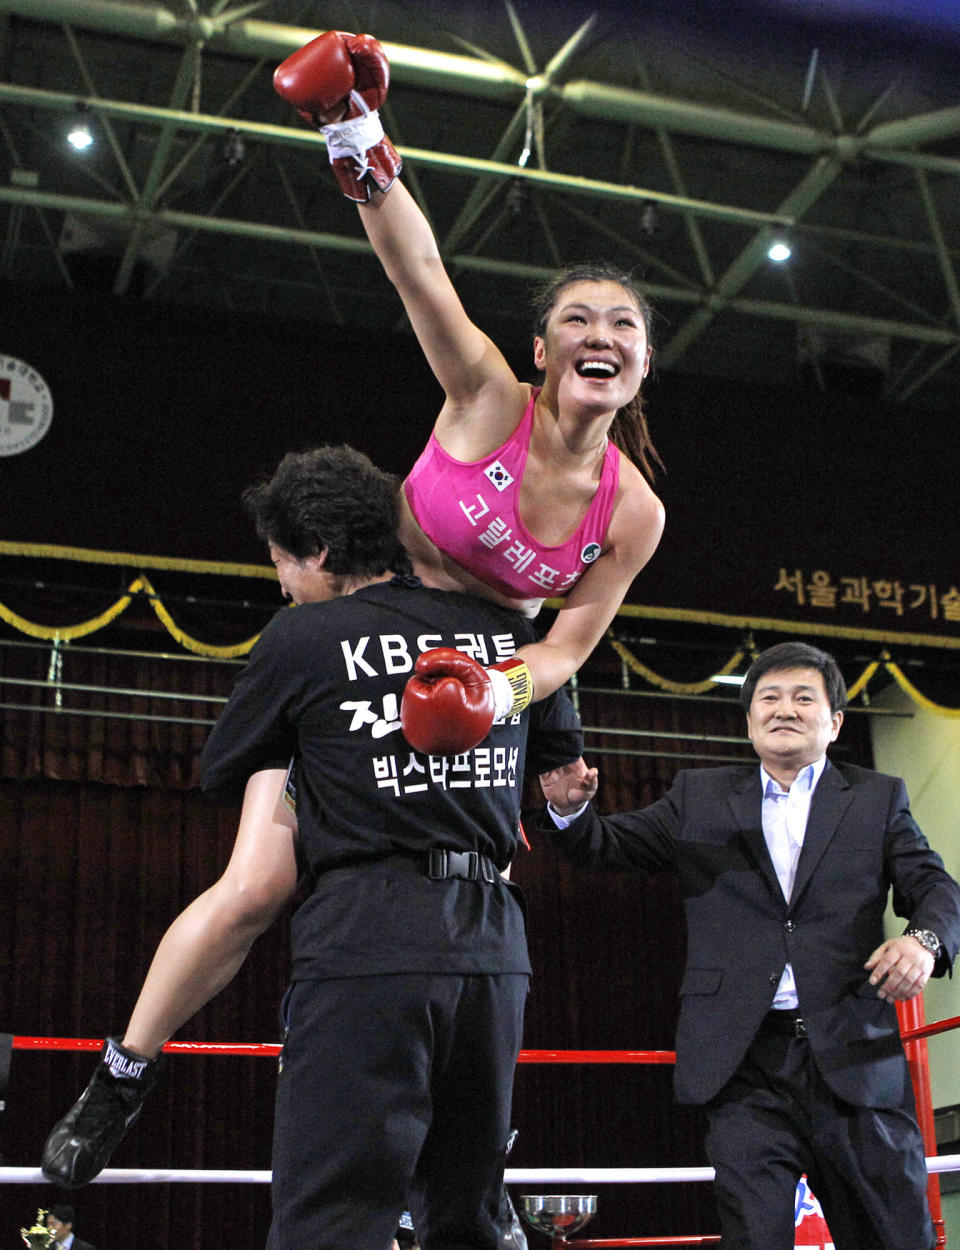 FILE - In this Dec. 17, 2011, file photo, South Korean champion Choi Hyunmi, a former North Korean defector, celebrates her victory over challenger Sainamdoy Pitaklongen of Thailand after their WBA women's featherweight title boxing bout in Seoul, South Korea. South Korea's only boxing world champion is Choi, a North Korean defector who fled her authoritarian homeland as a 13-year-old girl with her family in 2003. (AP Photo/ Lee Jin-man, File)